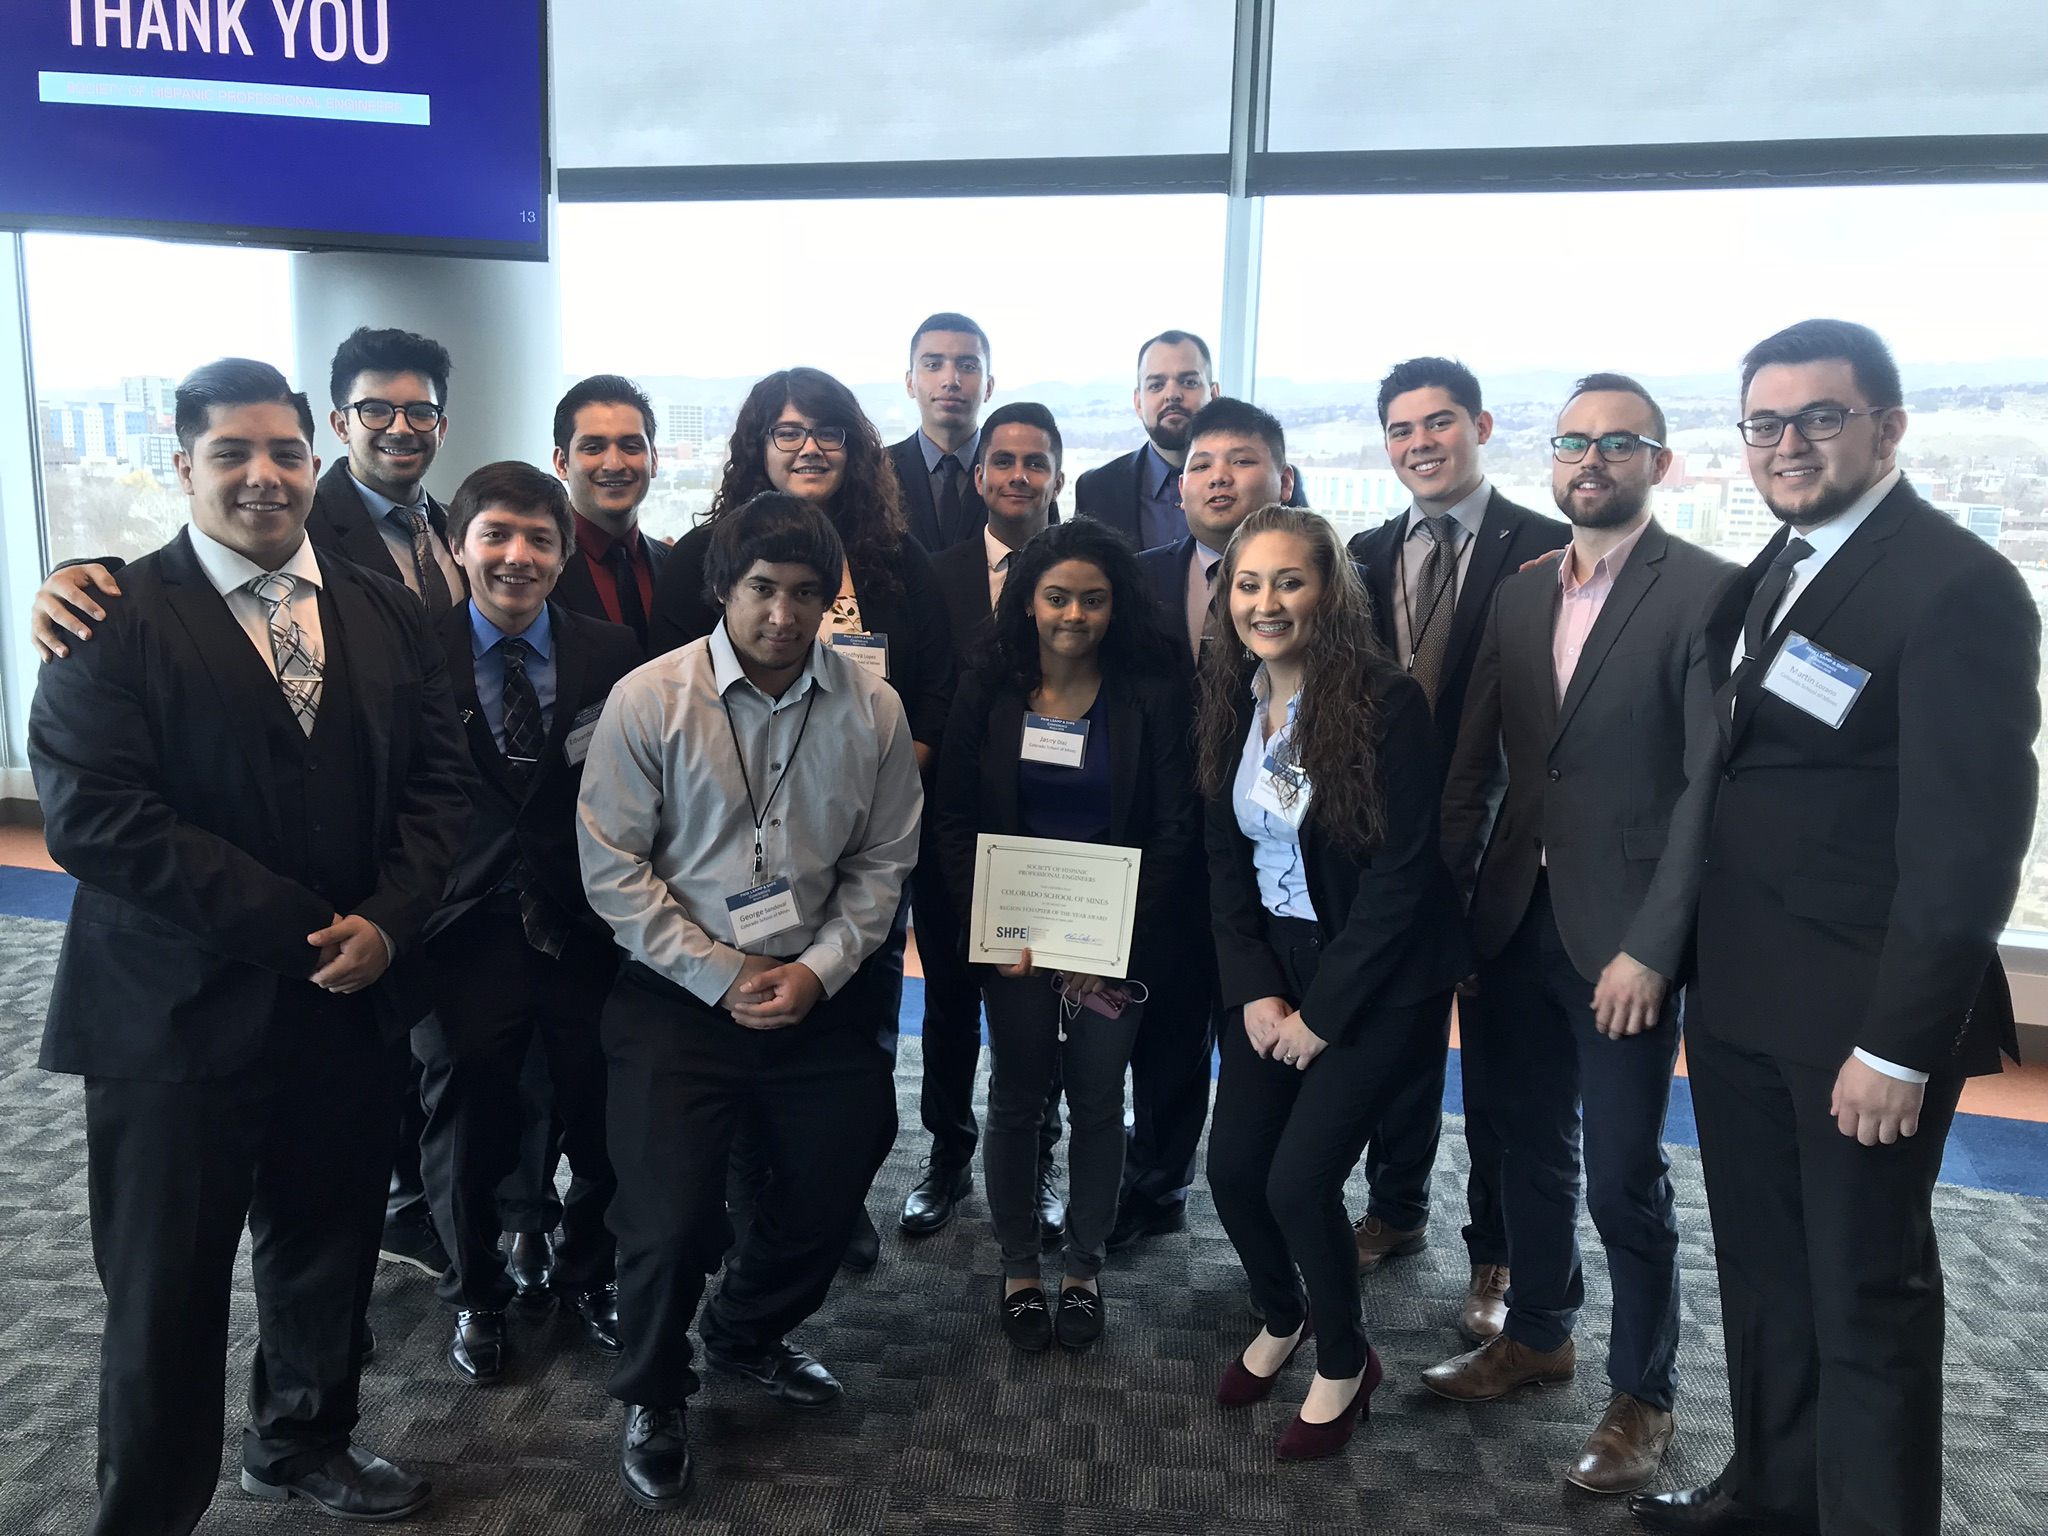 Mines SHPE chapter members